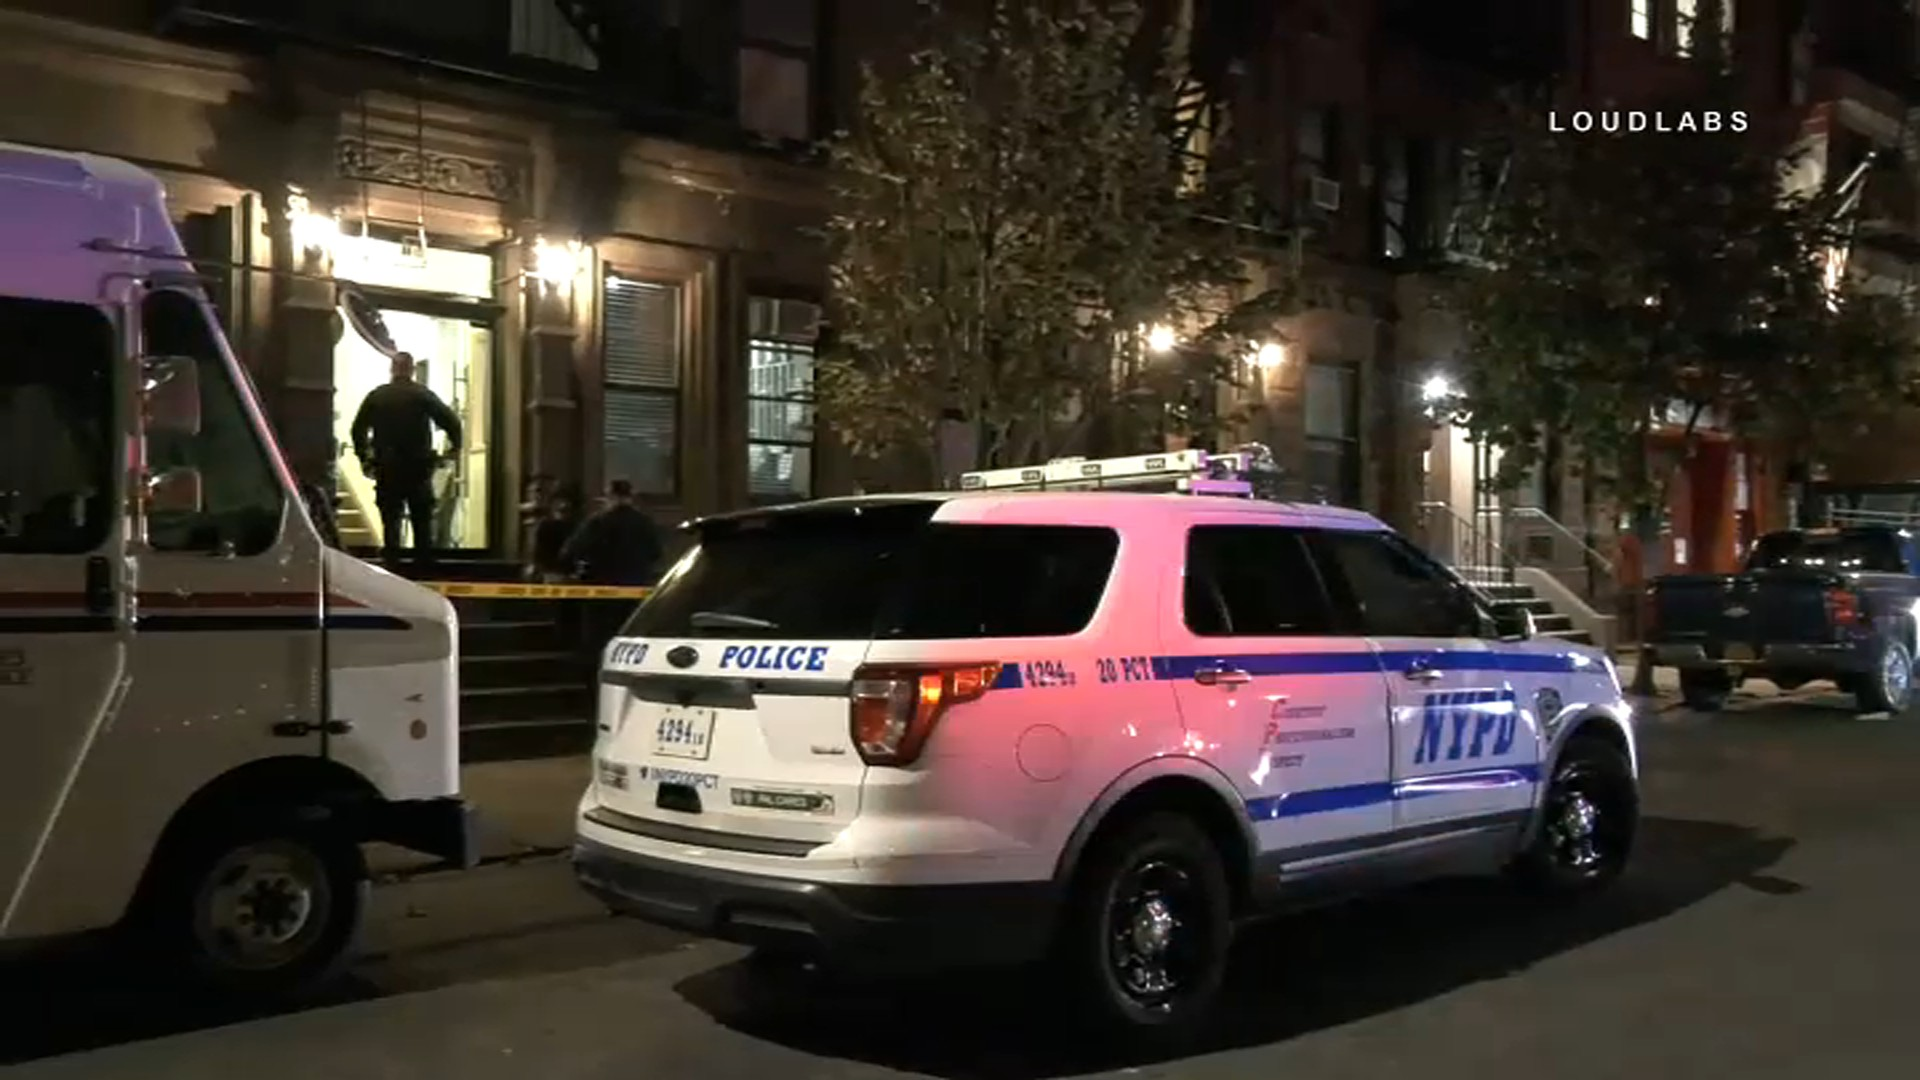 Homeless Man, 22, Stabbed to Death in Fight at Shelter: NYPD